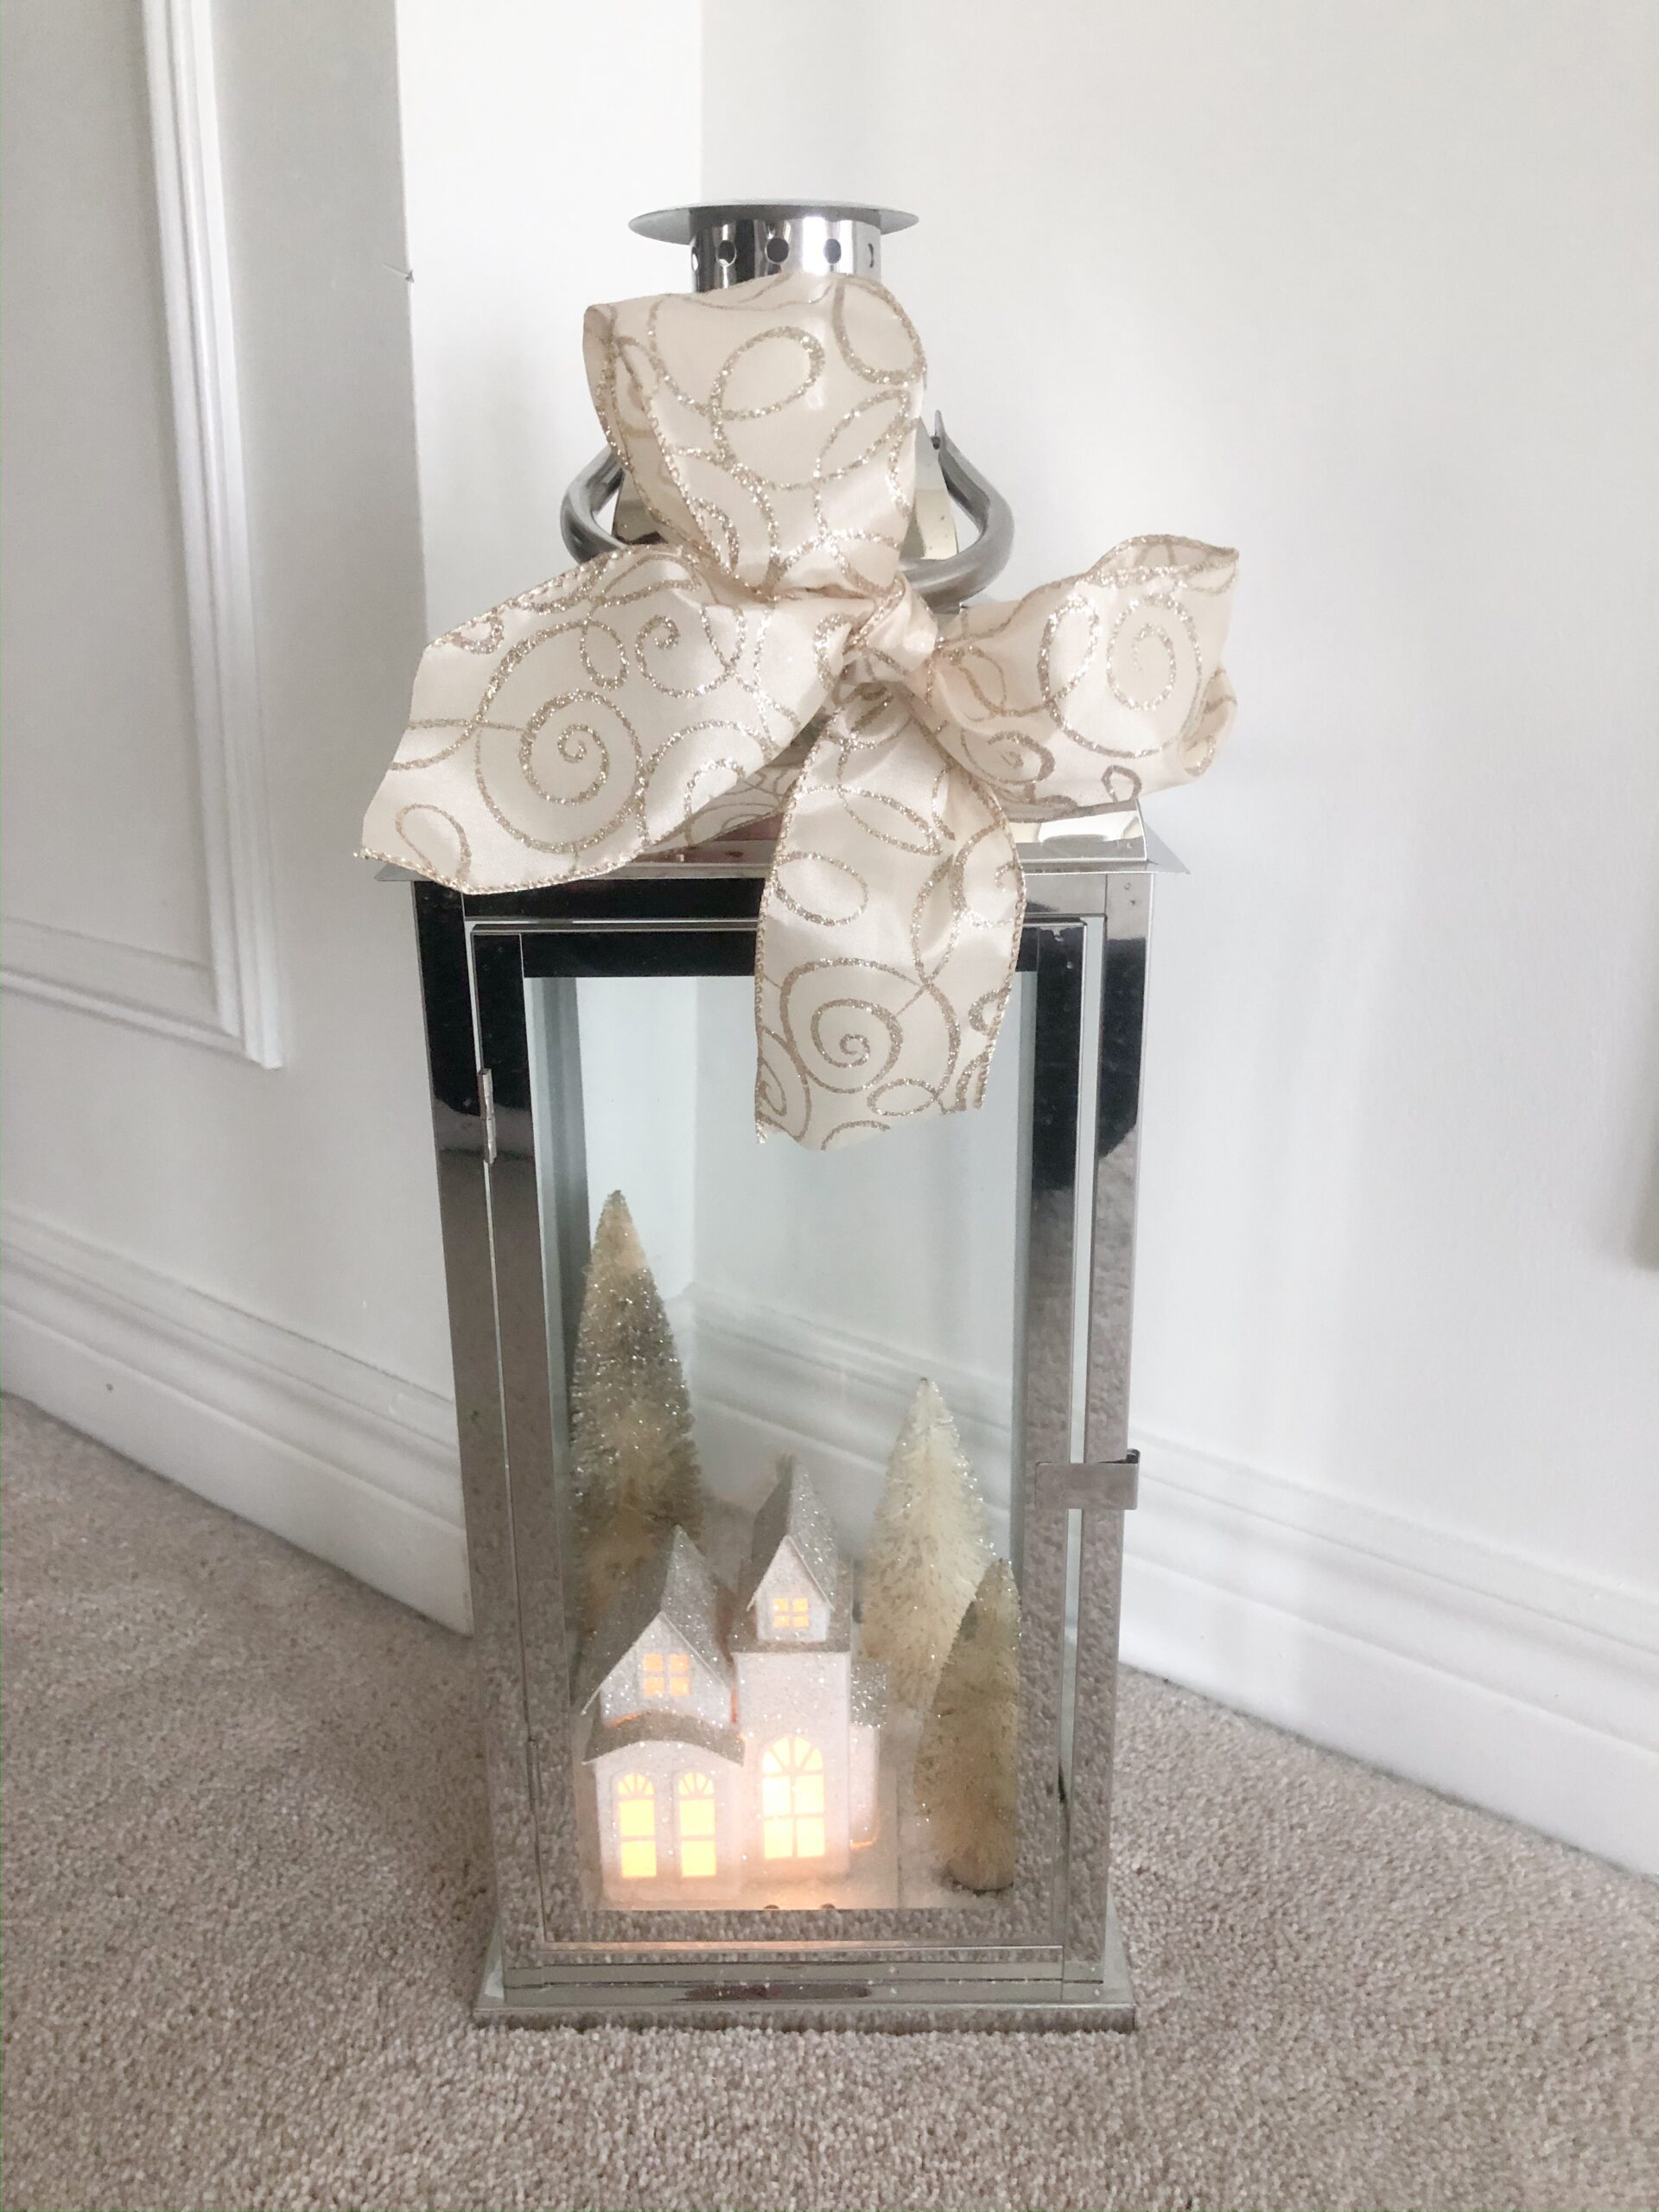 DIY Christmas Lantern on Livin' Life with Style